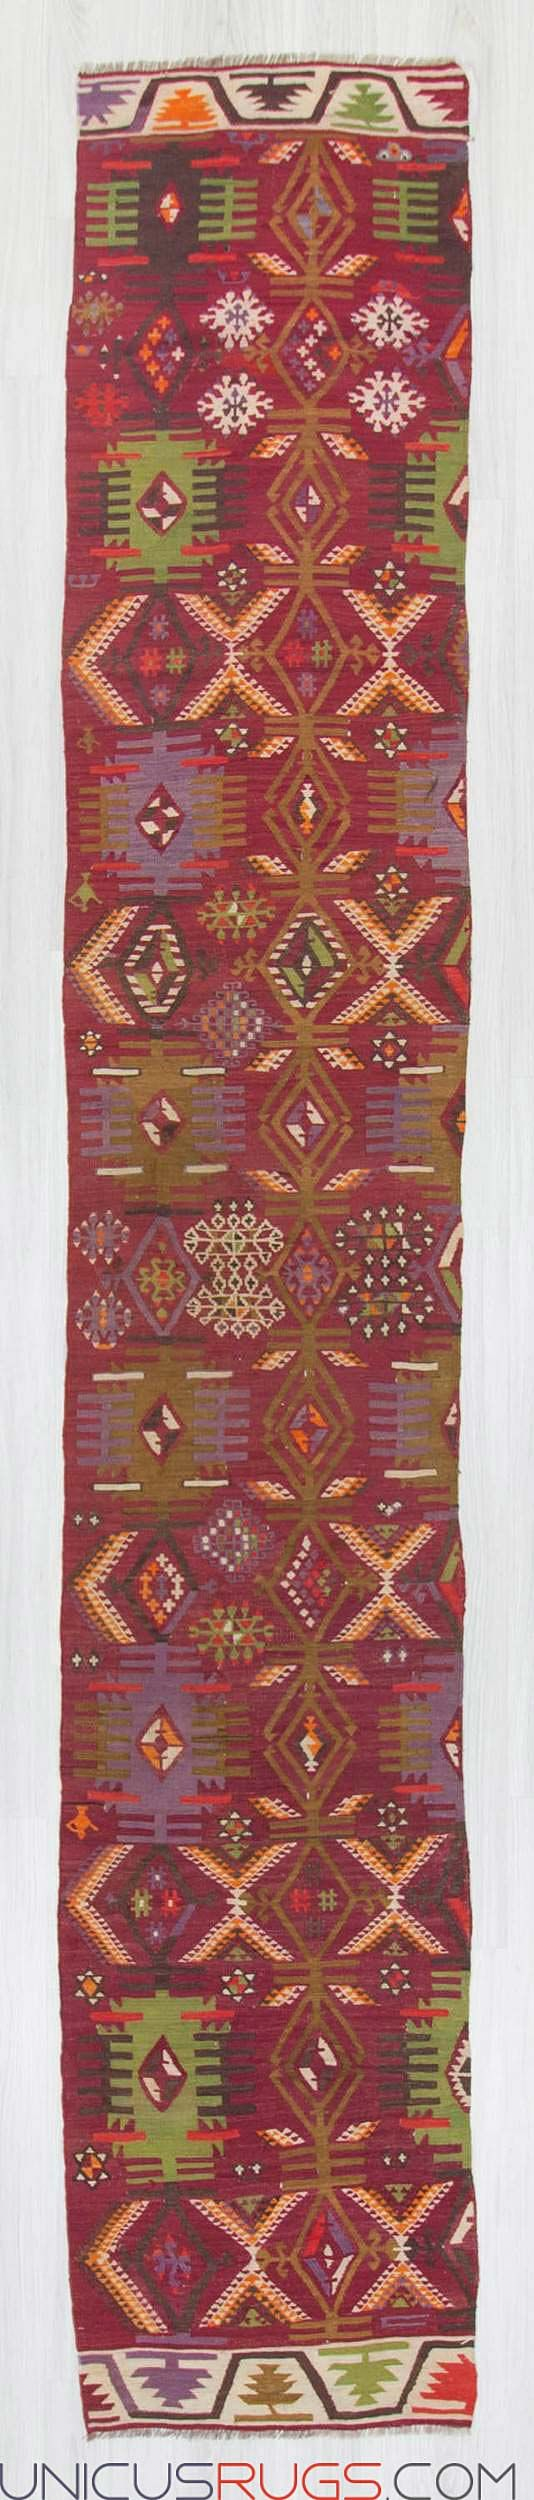 """Vintage kilim runner from Adana region of Turkey. In very good condition. Approximately 60-70 years old Width: 2' 3"""" - Length: 13' 0"""" RUNNERS"""